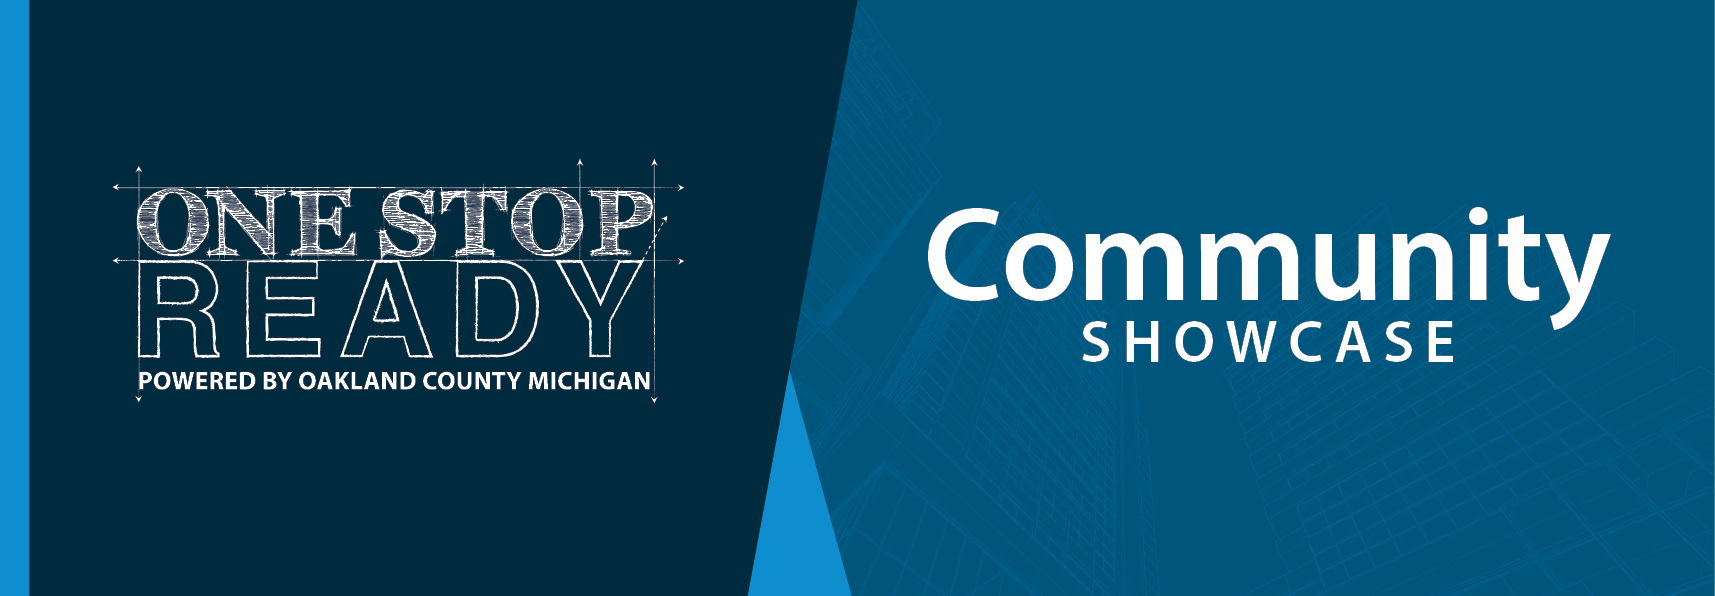 One Stop Ready Community Showcase